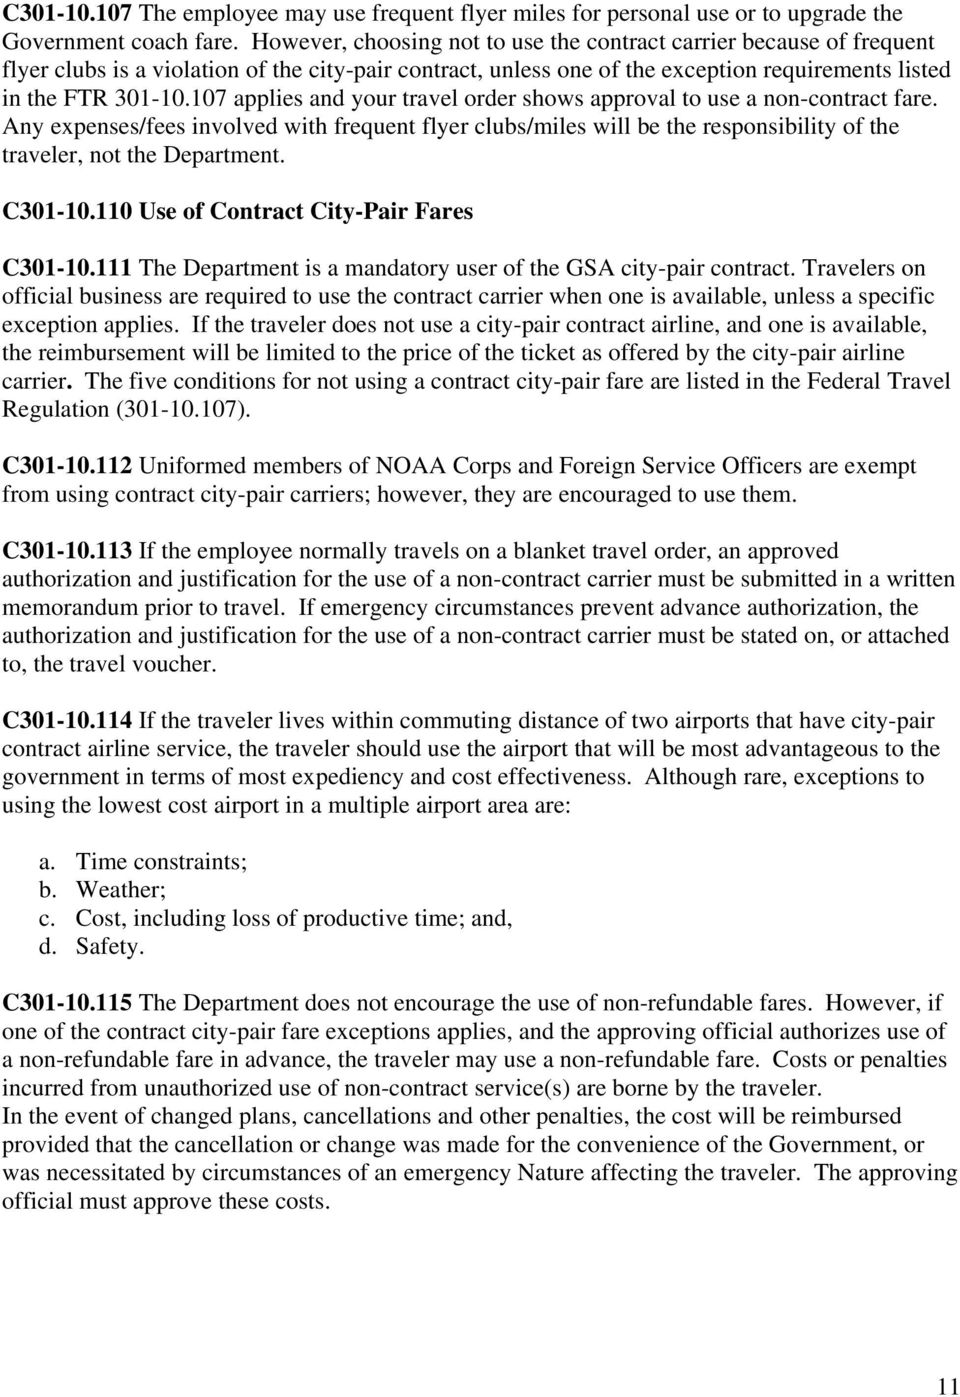 107 applies and your travel order shows approval to use a non-contract fare. Any expenses/fees involved with frequent flyer clubs/miles will be the responsibility of the traveler, not the Department.